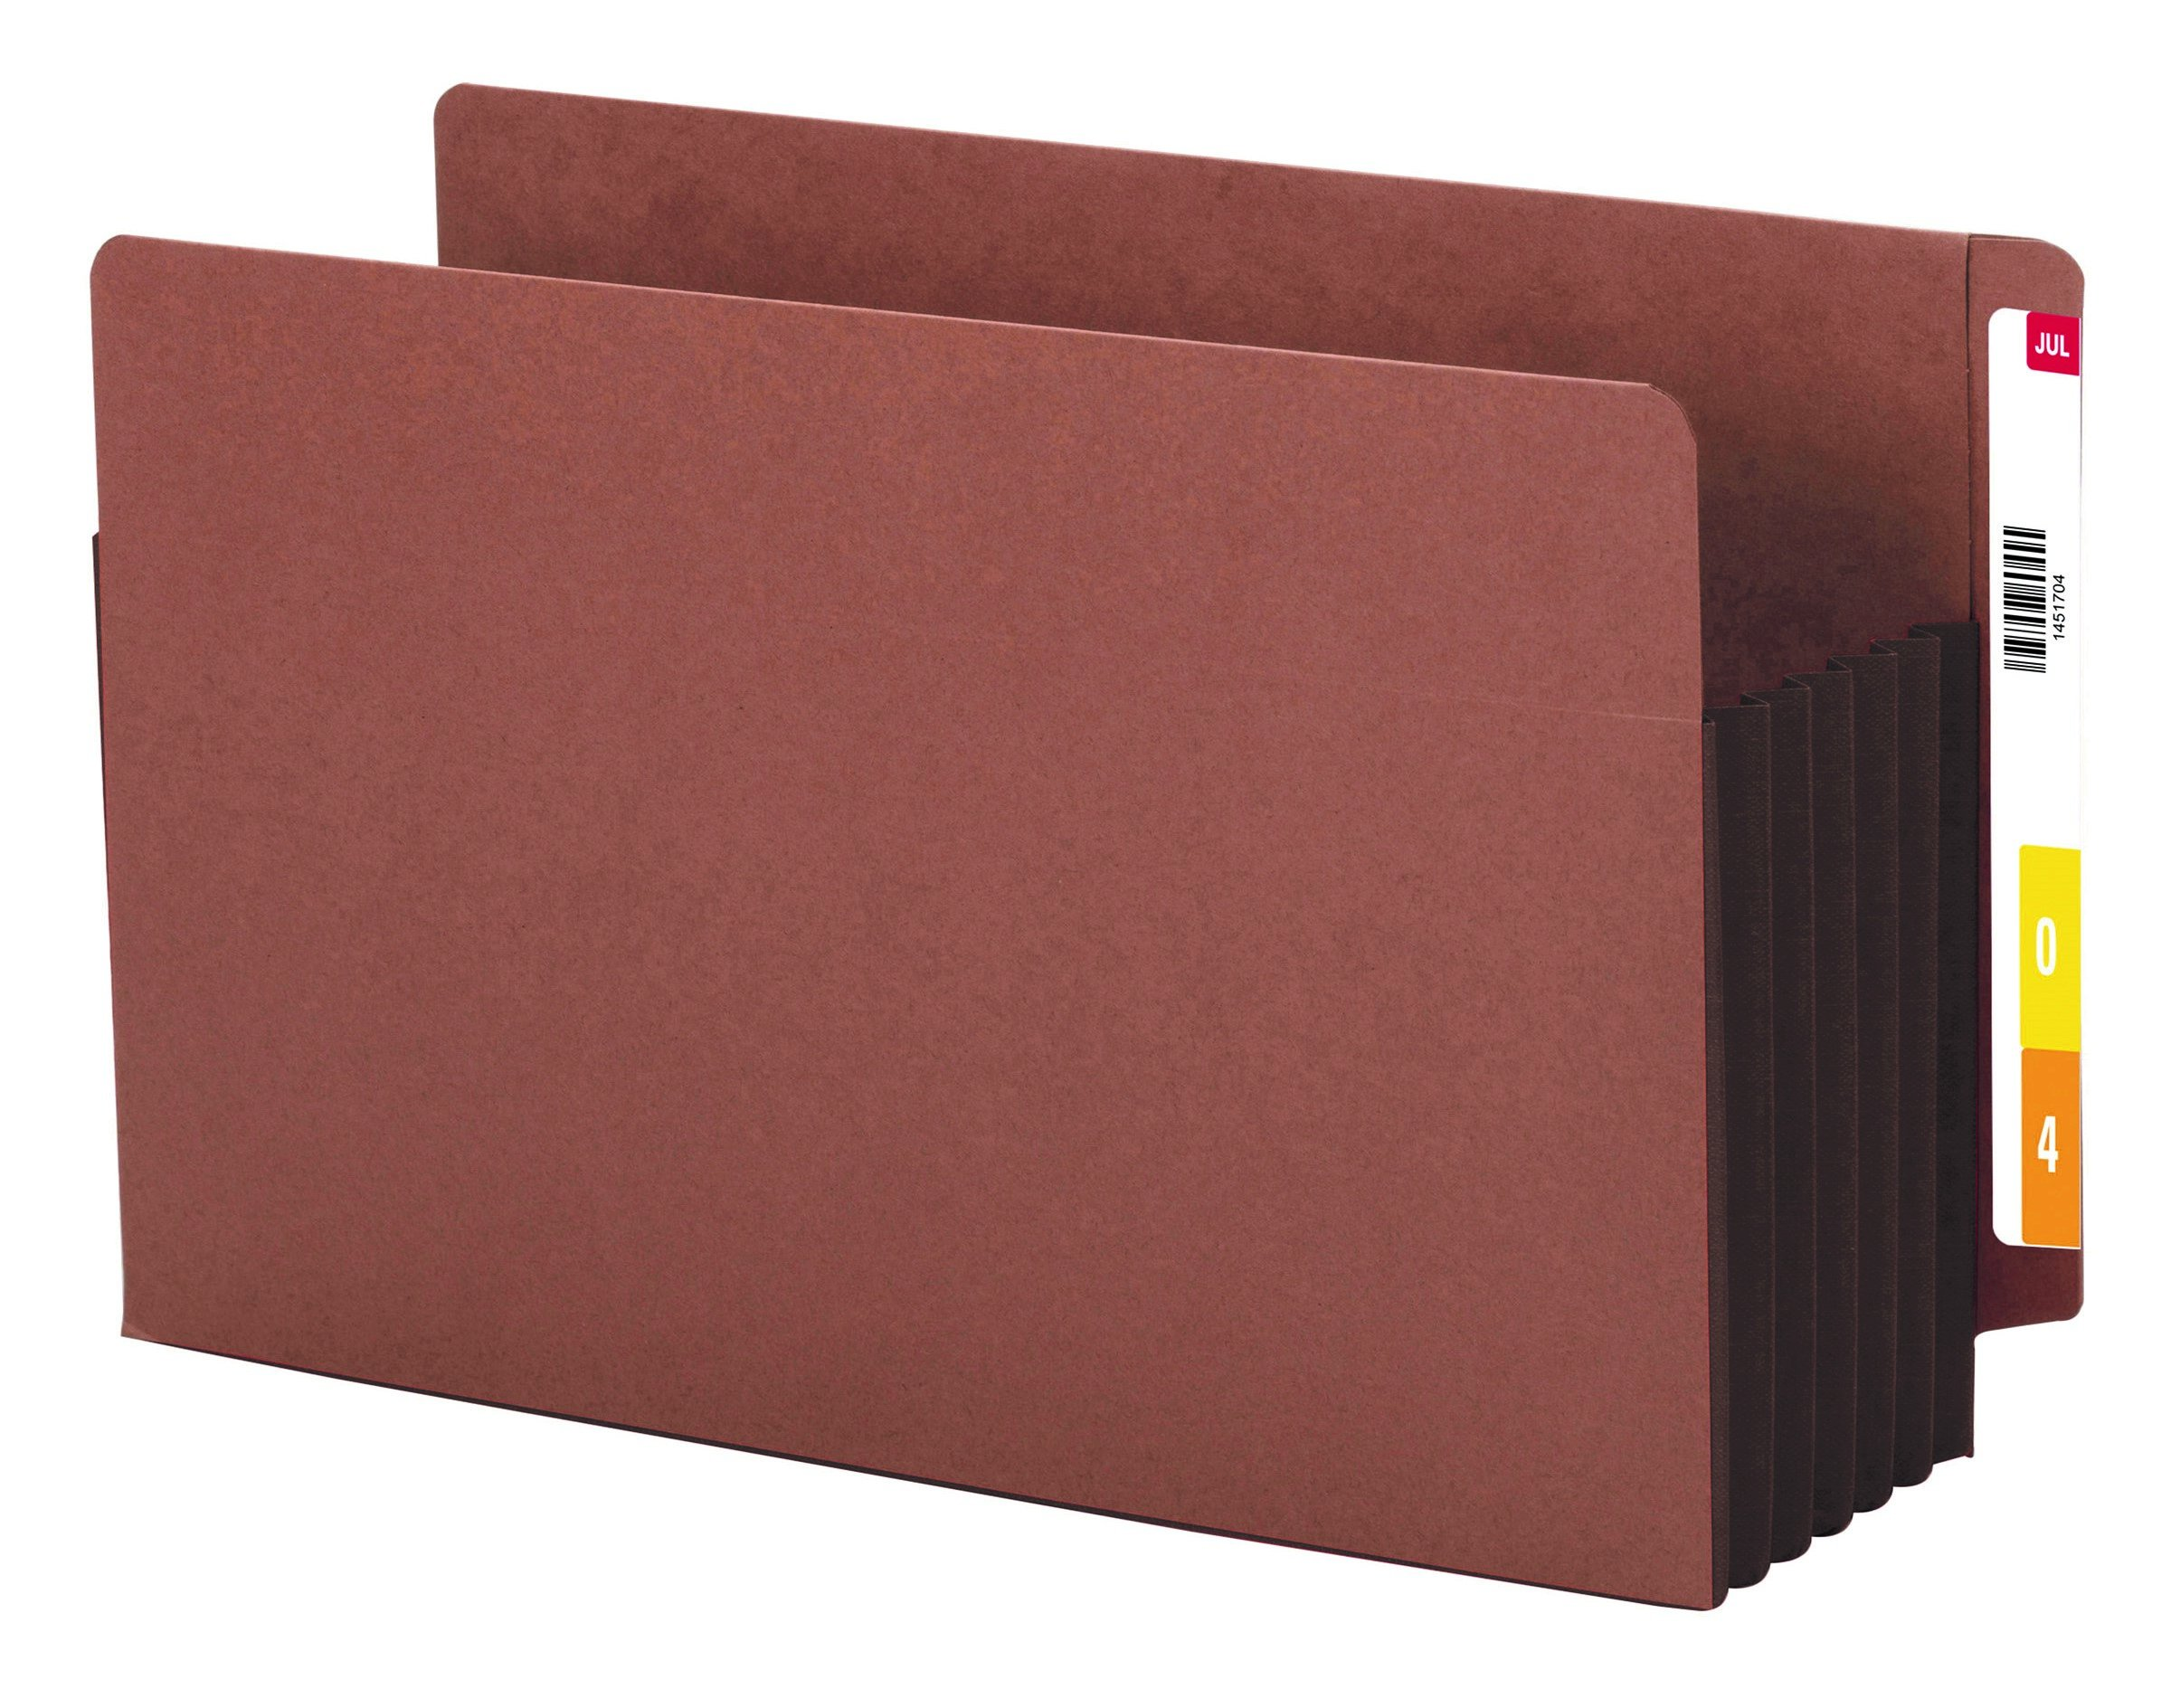 Smead End Tab File Pocket, Reinforced Straight-Cut Tab, 5-1/4'' Expansion, Extra Wide Legal Size, Redrope with Dark Brown Gusset, 10 per Box (74691) by Smead